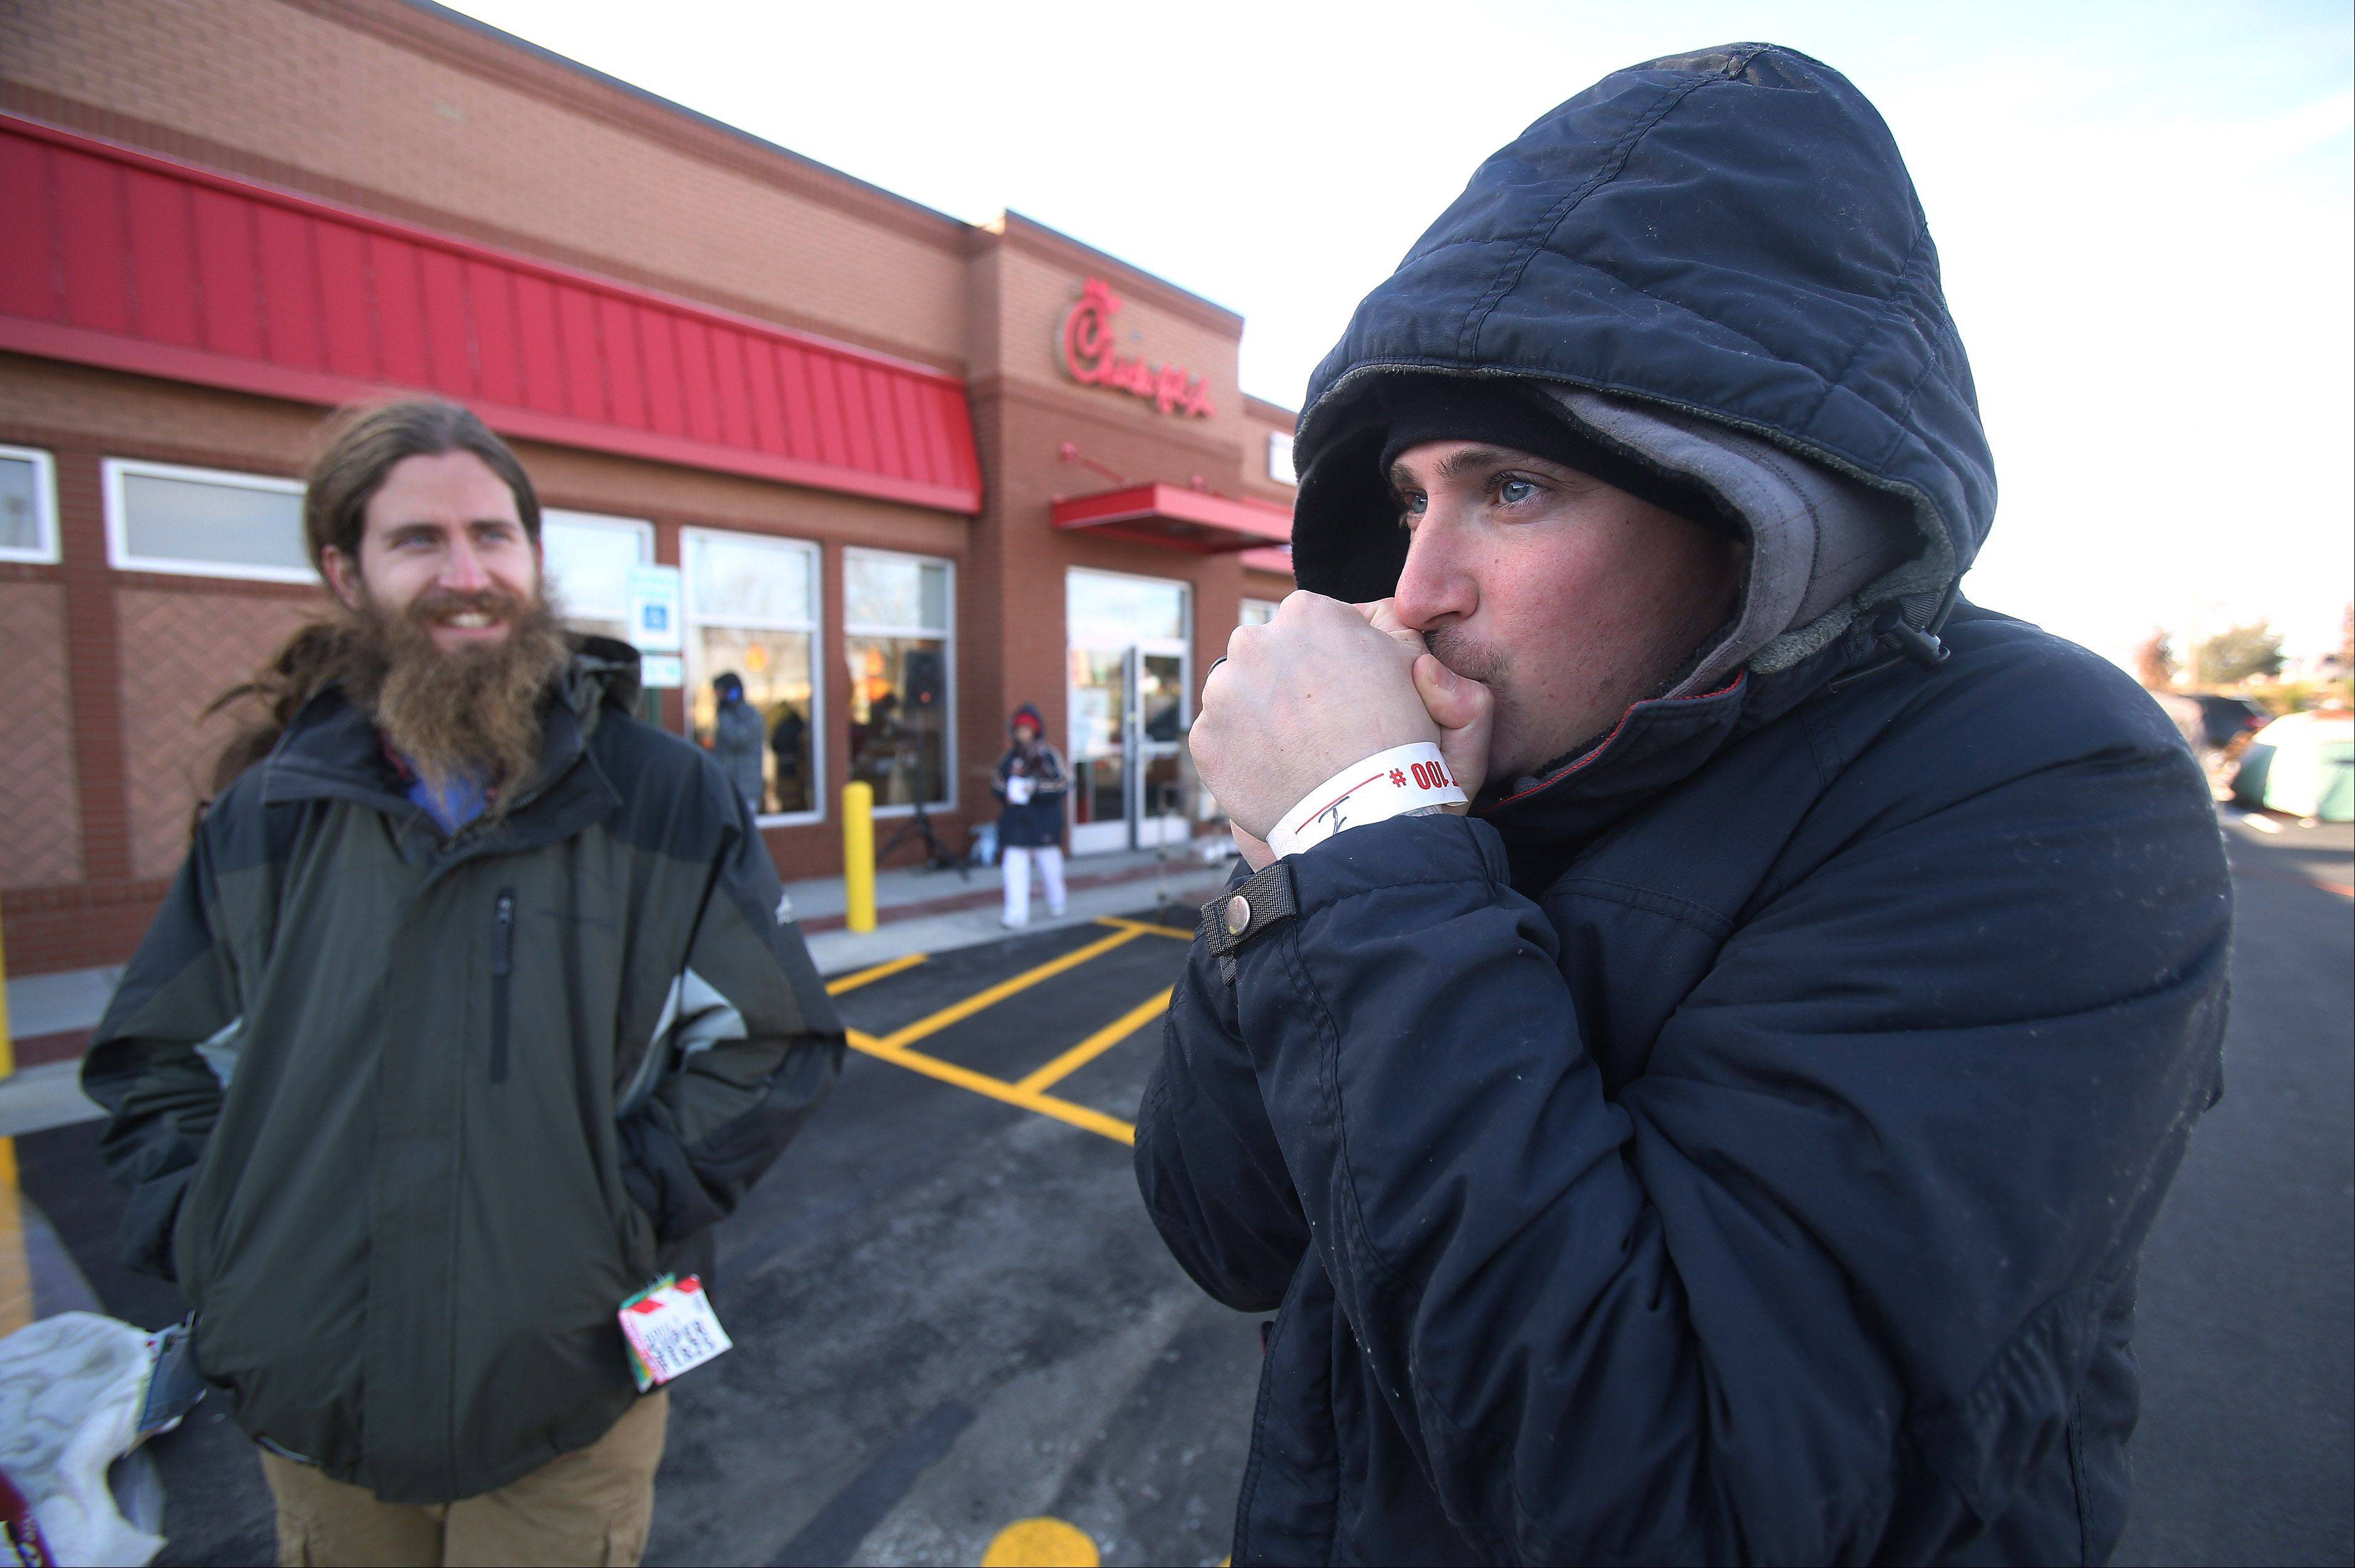 Jacob Schmanke, of Elgin, right, and his brother Josh, of Aurora, try to stay warm after being the first to stand in line Wednesday outside Chick-fil-A in Vernon Hills waiting for its grand opening on Thursday. They joined 100 people on a cold, blustery morning and will receive free meals for a year as part of a promotion by the restaurant chain.